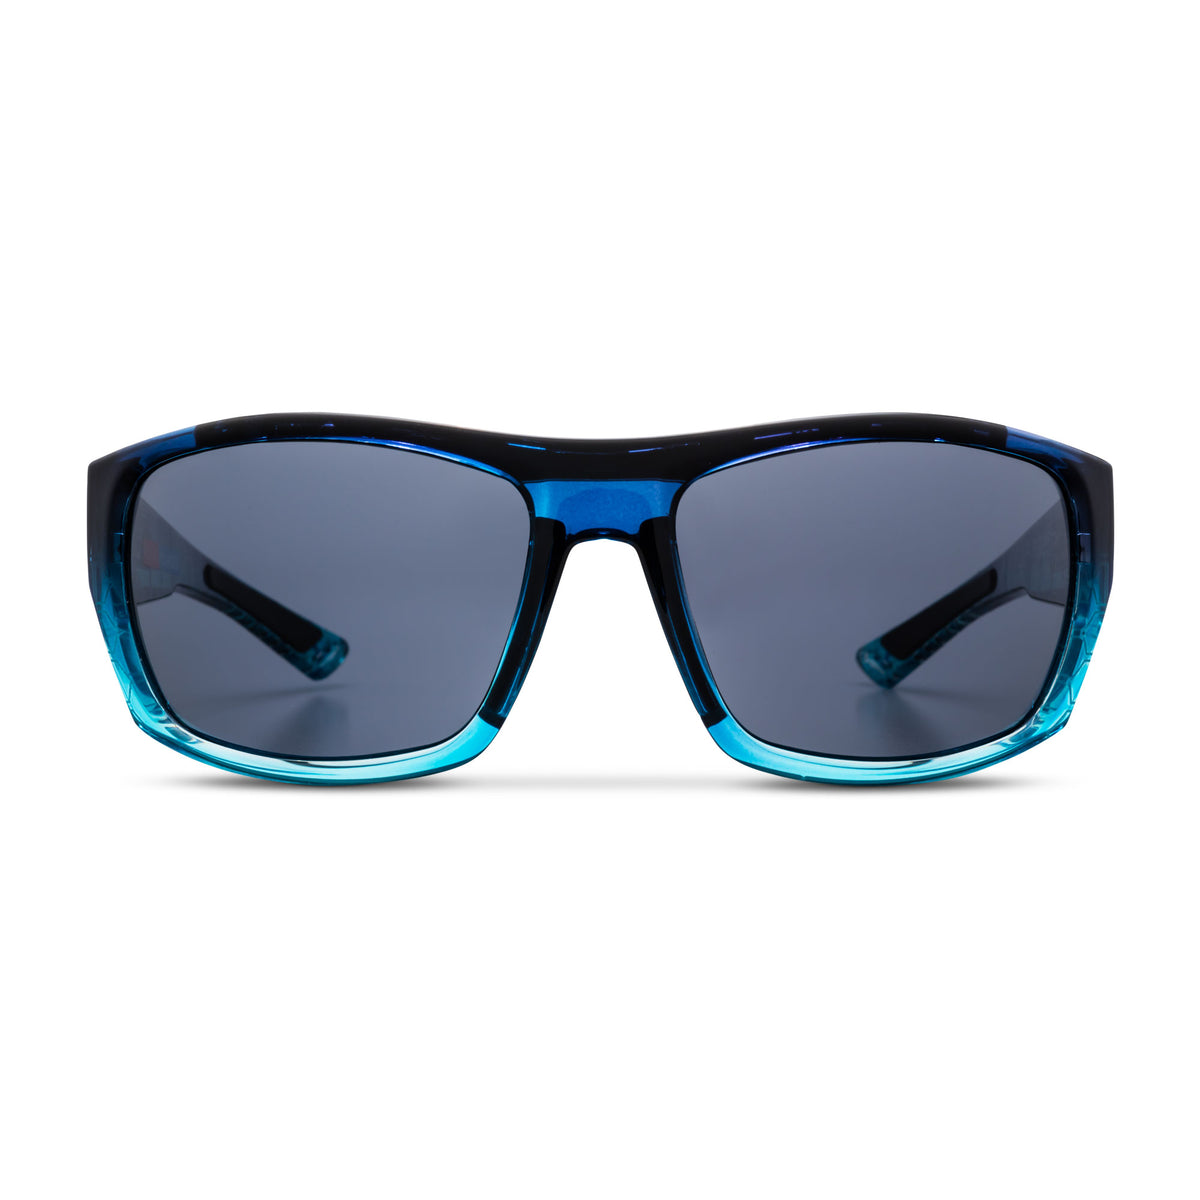 Pursuit - Polarized Polycarbonate Lens Big Image - 2